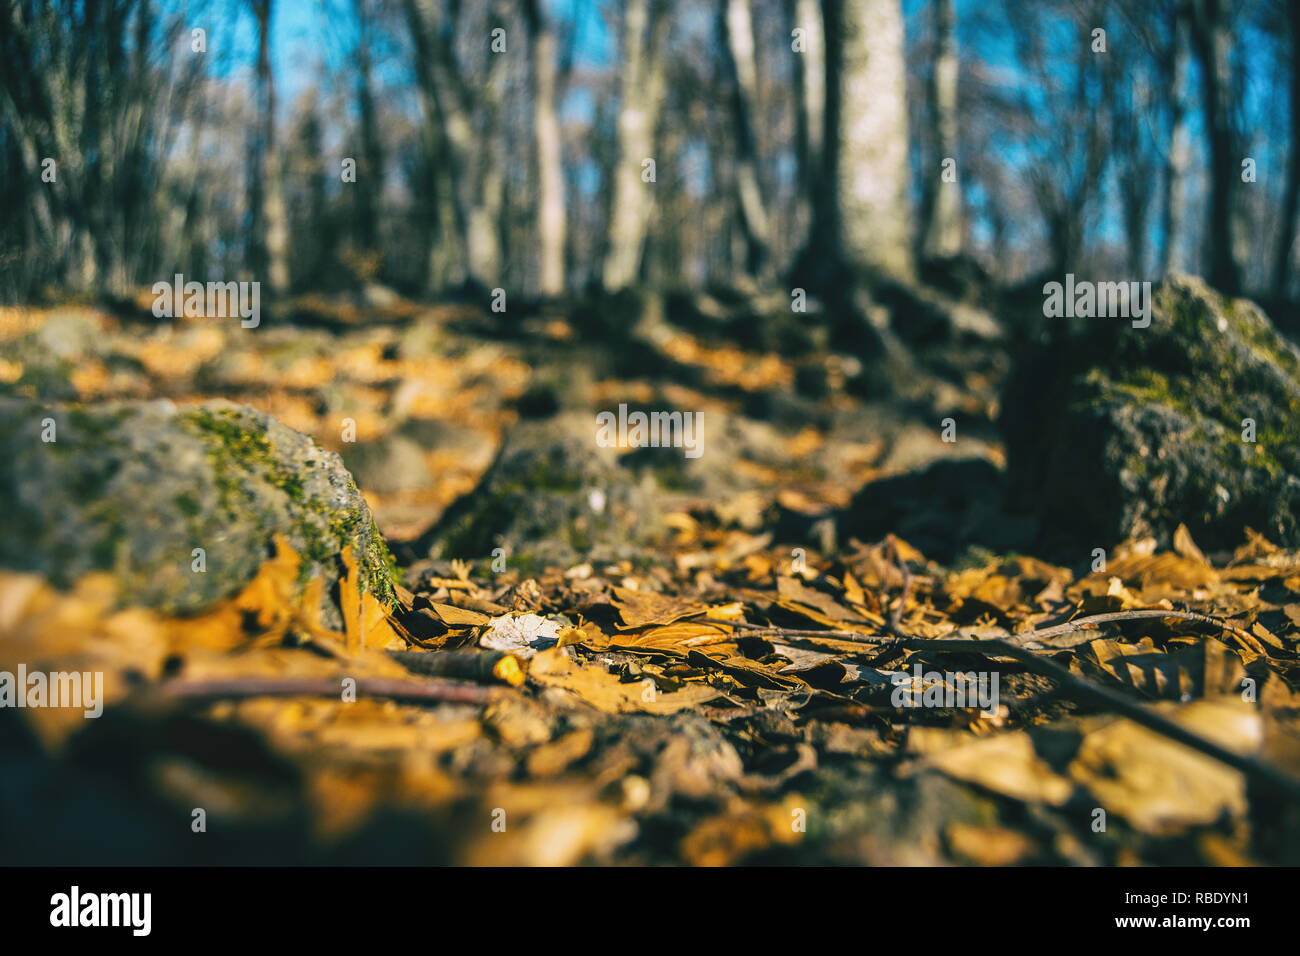 Autumn leaves on the ground of a forest taken at ground level - Stock Image